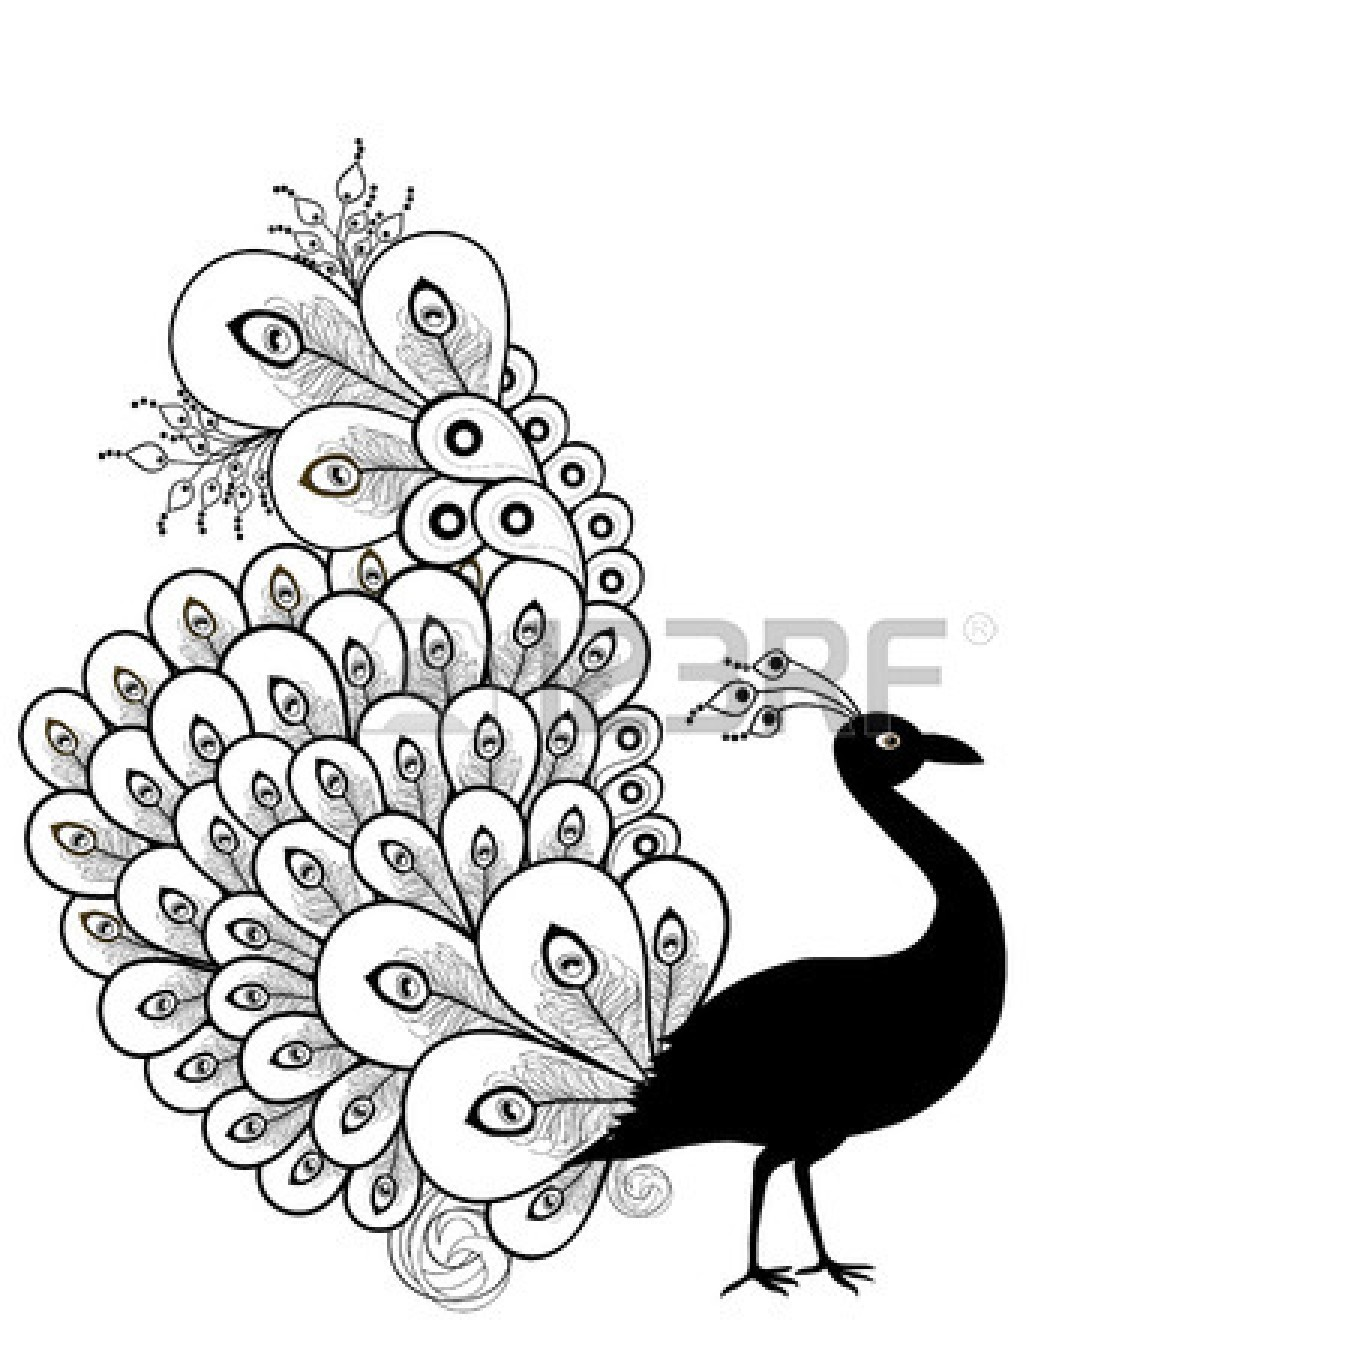 Peafowl clipart black and white Images Black White And peacock%20black%20and%20white